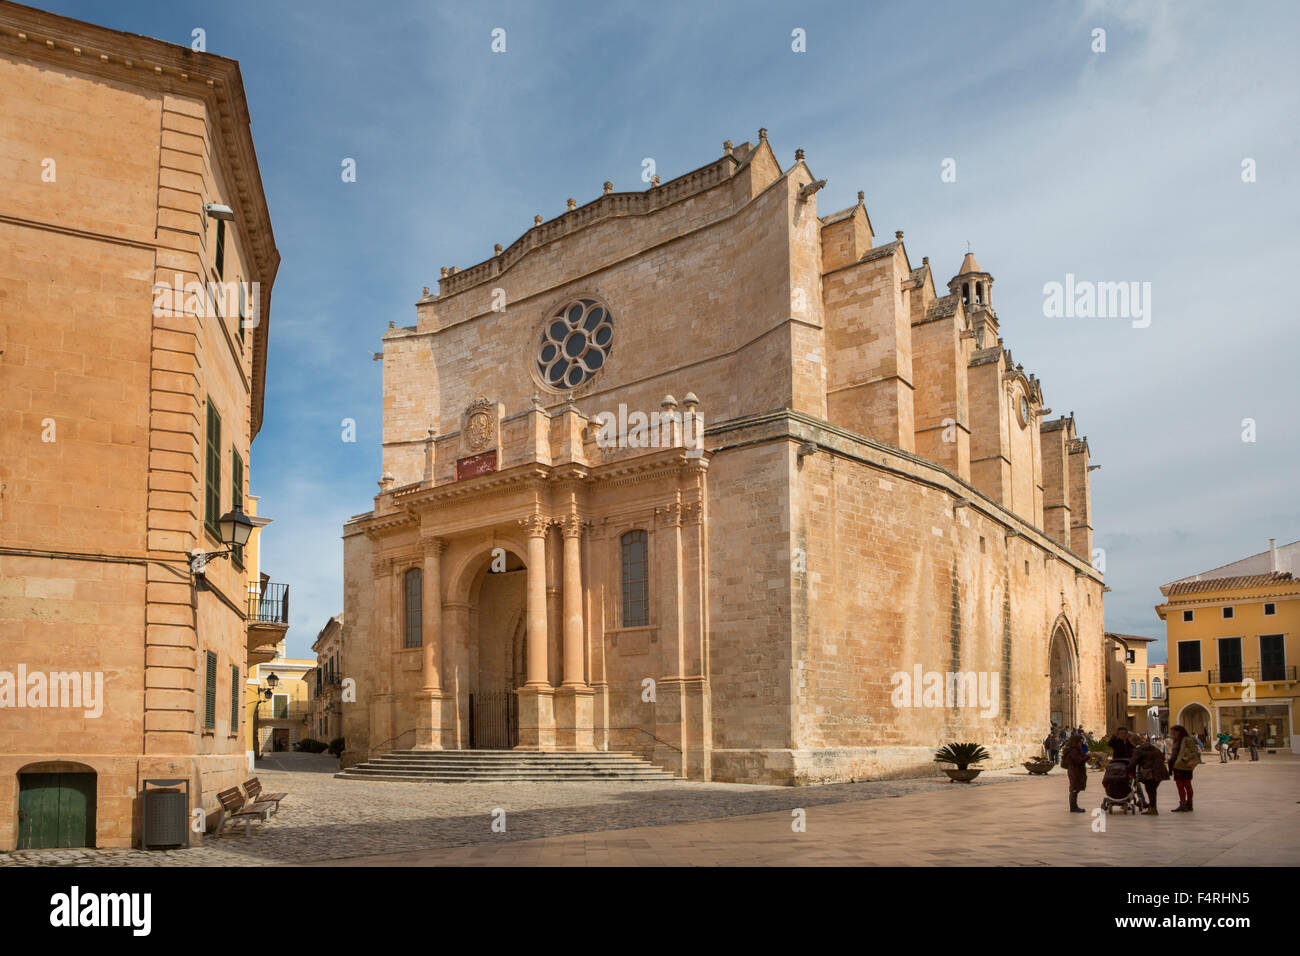 Ciutadella, Menorca, Balearics, Spring, architecture, cathedral, down town, Mediterranean, old, touristic, travel - Stock Image